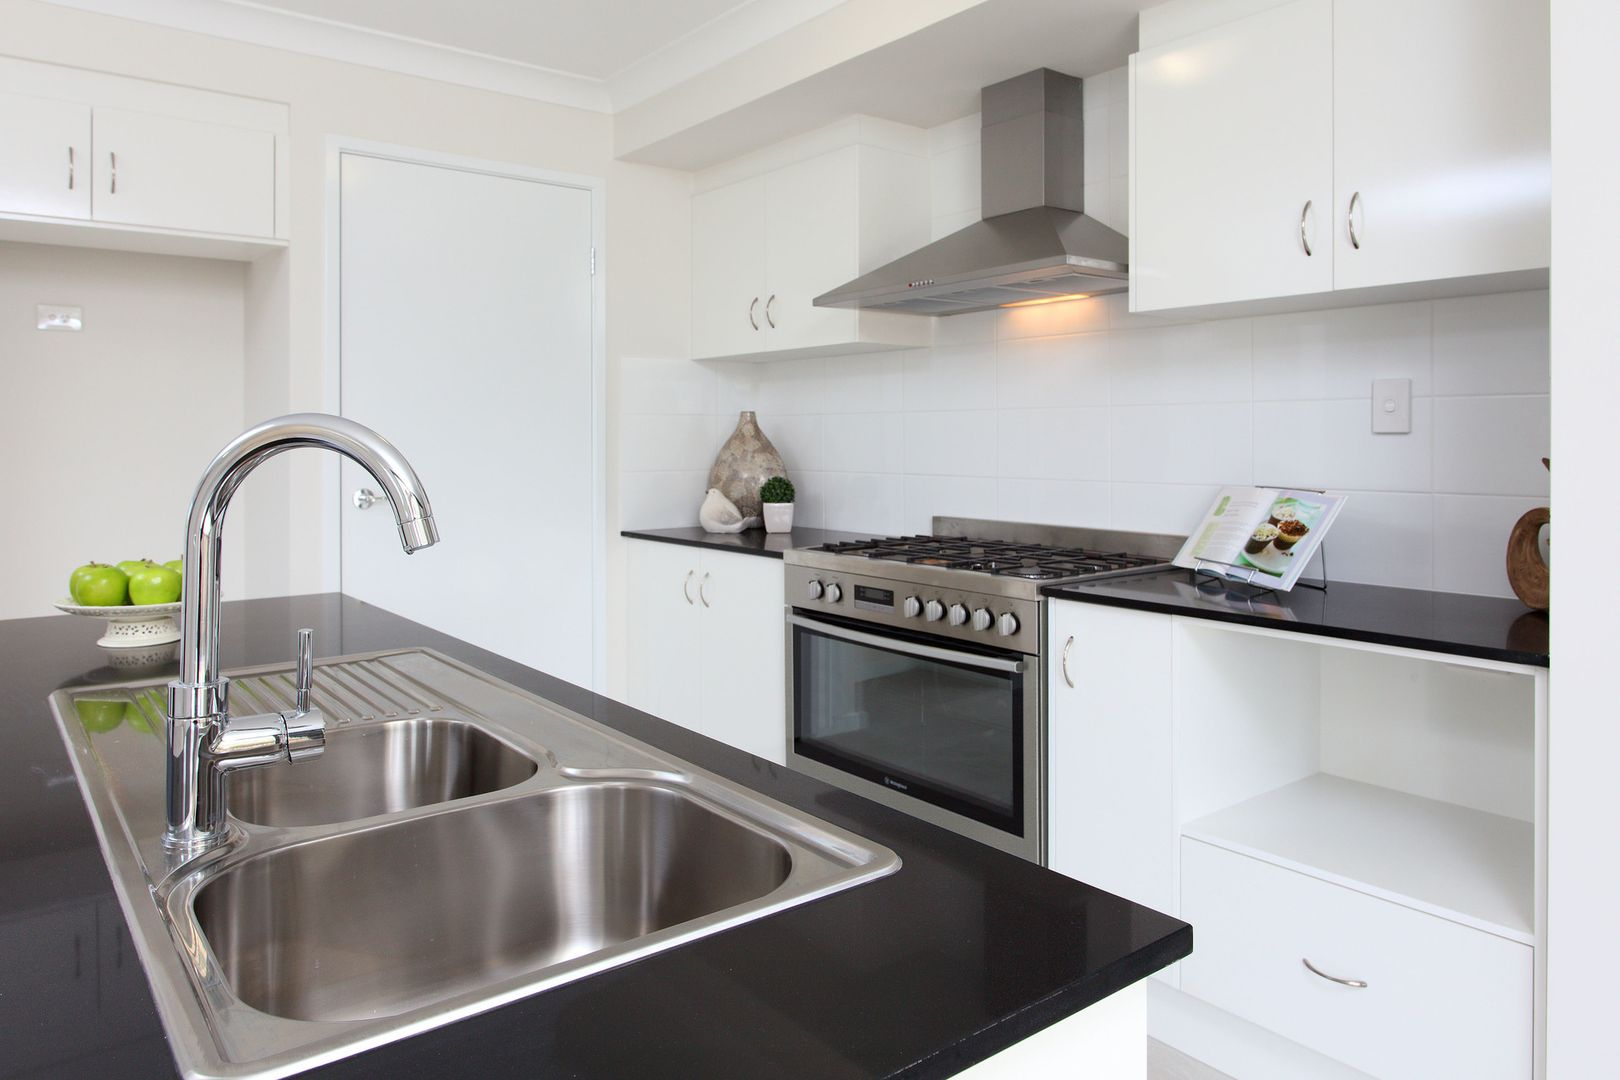 Details by Request ., Whittlesea VIC 3757, Image 2